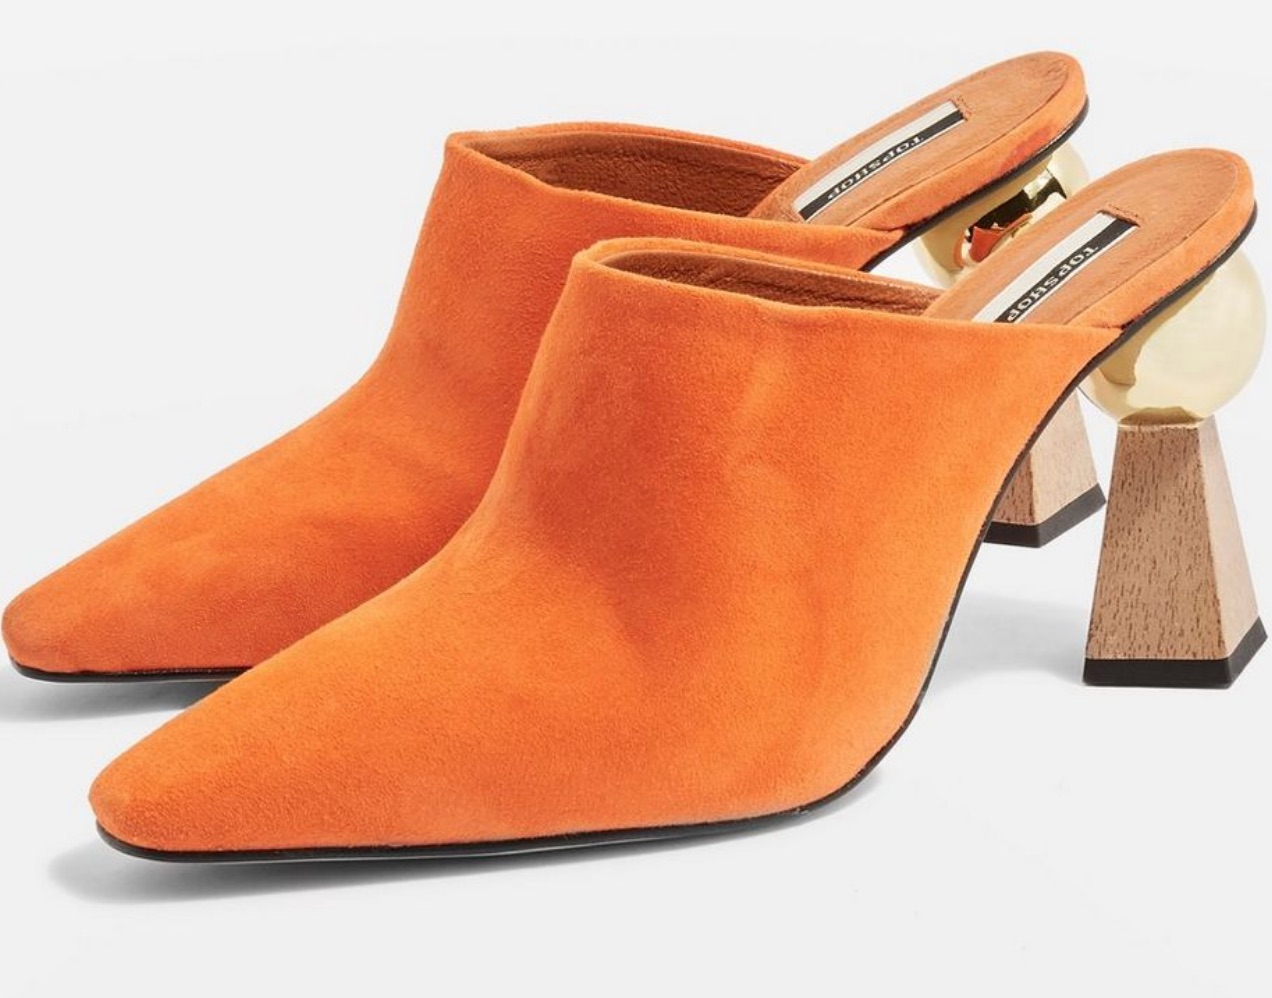 Topshop Pointed Toe Sculptural Heel Orange Mules